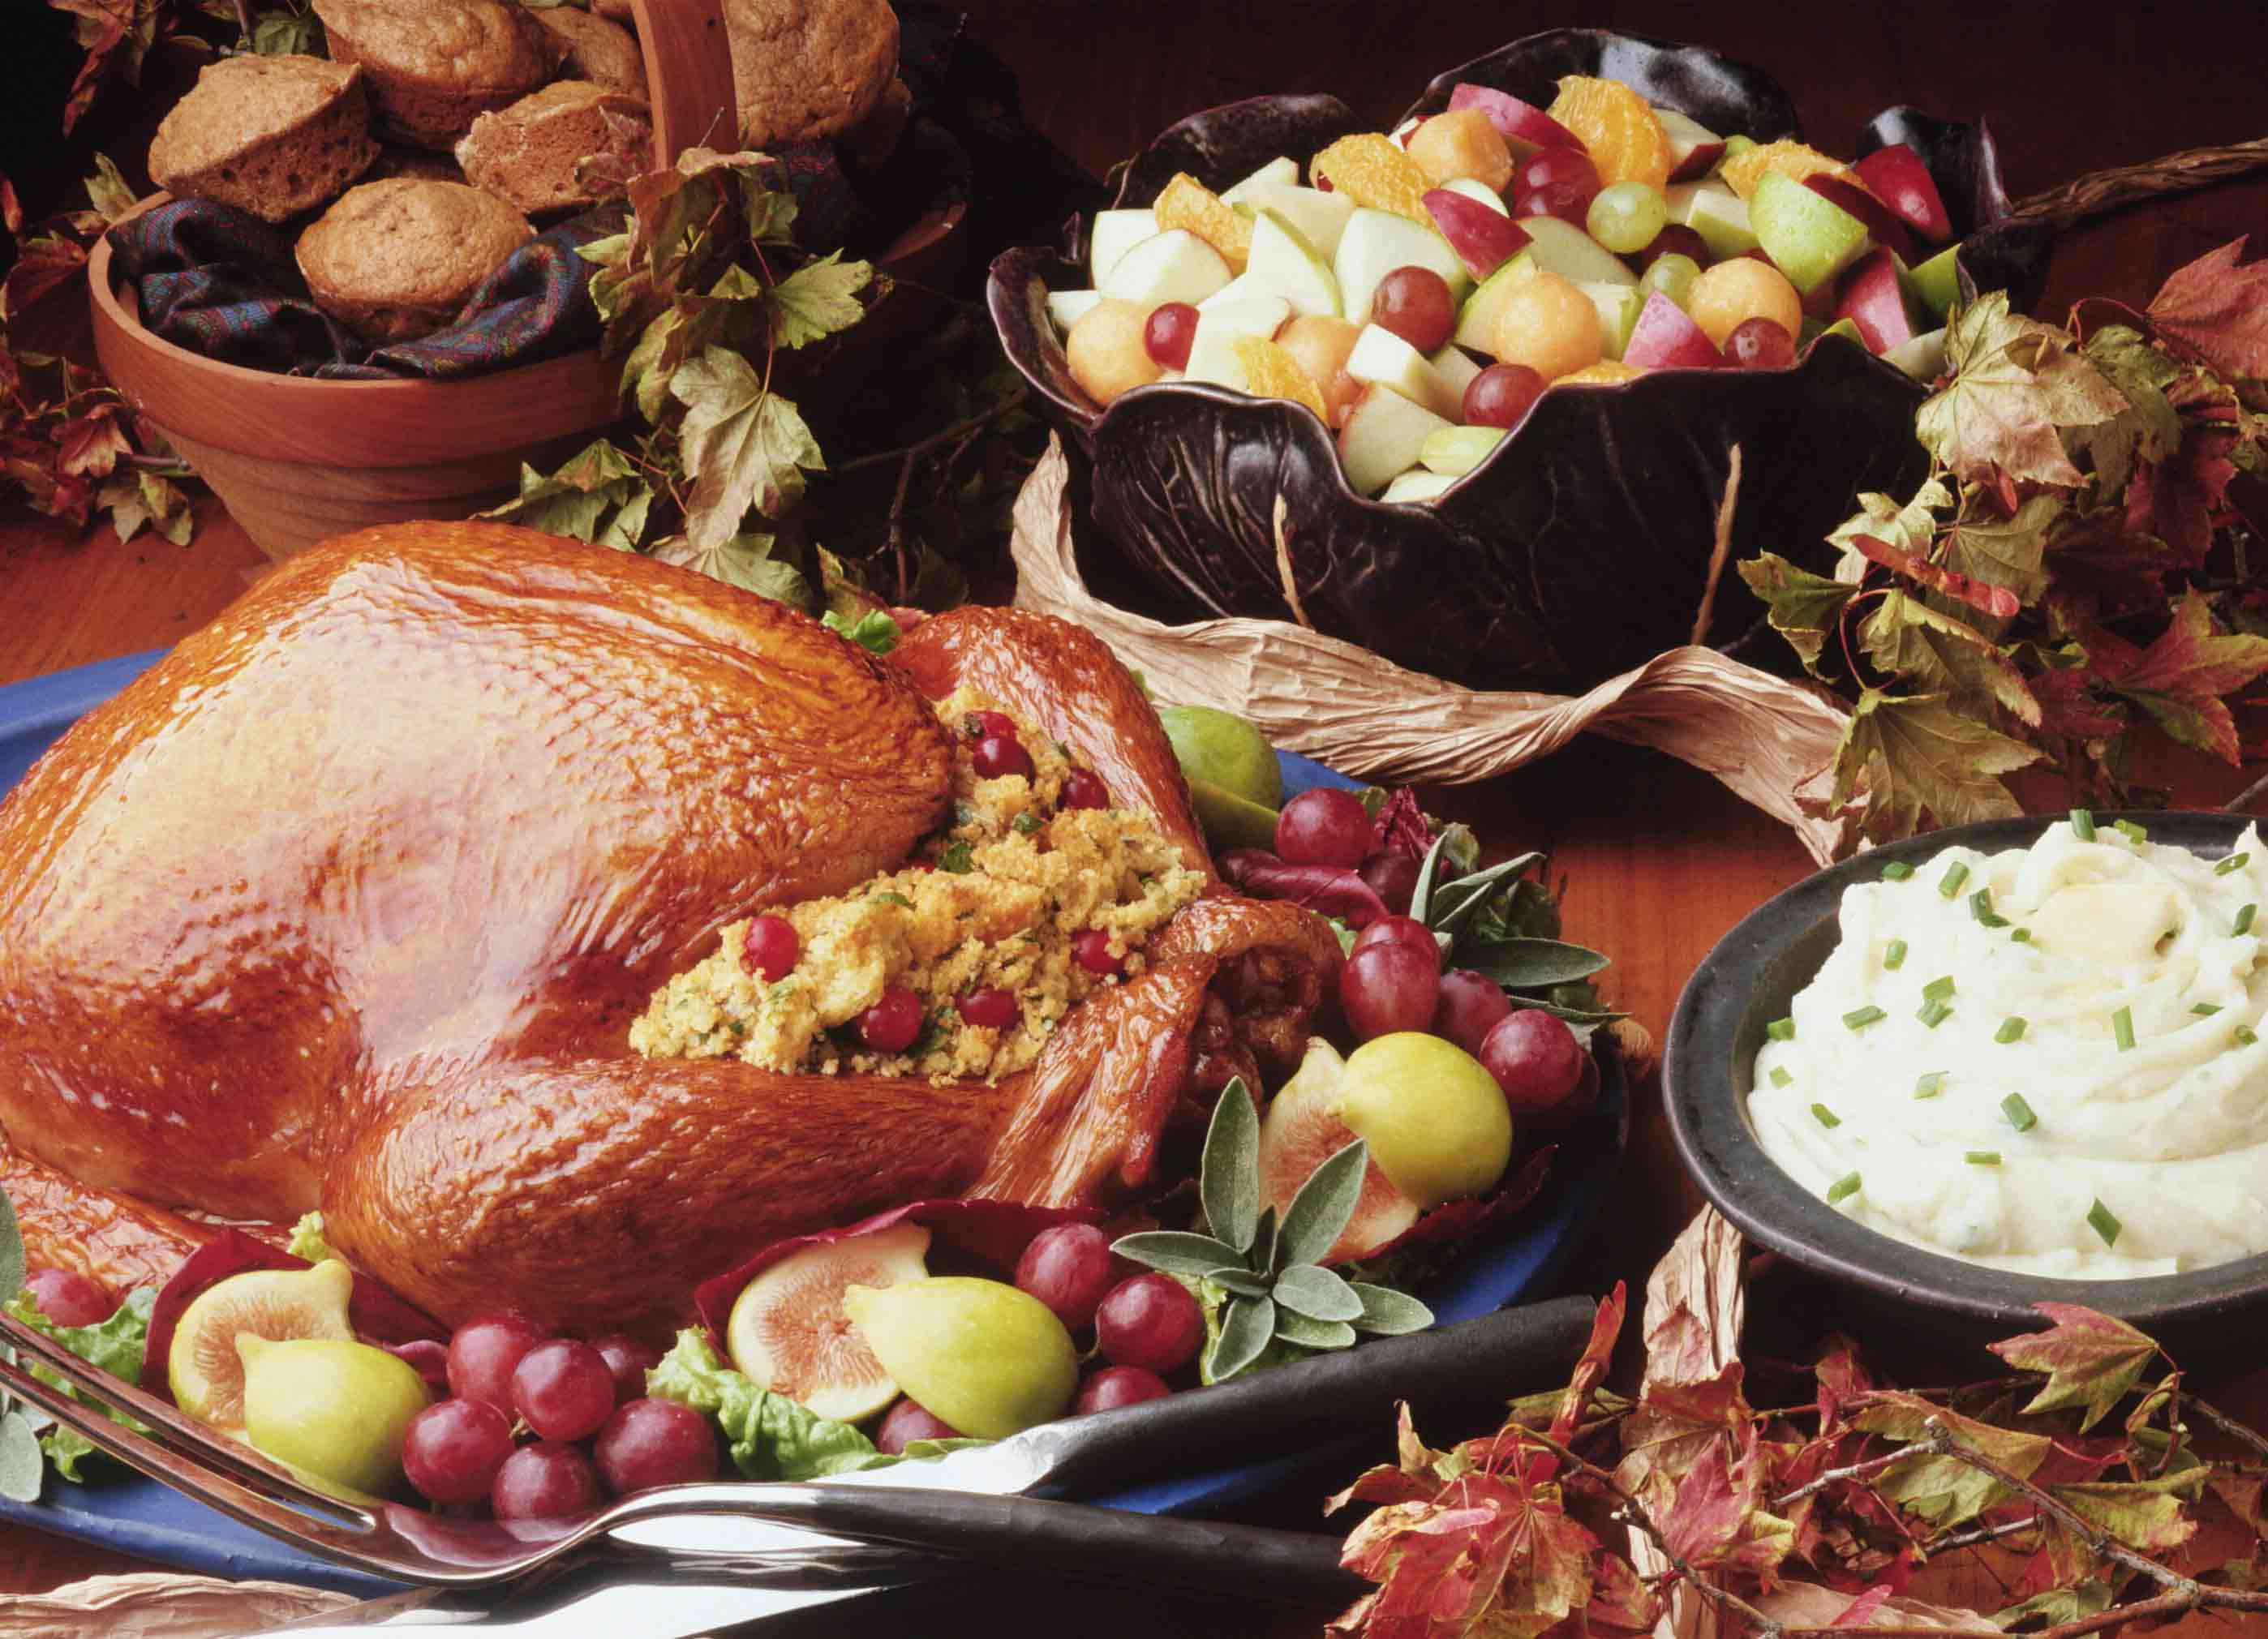 Festival Foods Thanksgiving Dinners  Northern Michigan Restaurants Serving Thanksgiving Dinner